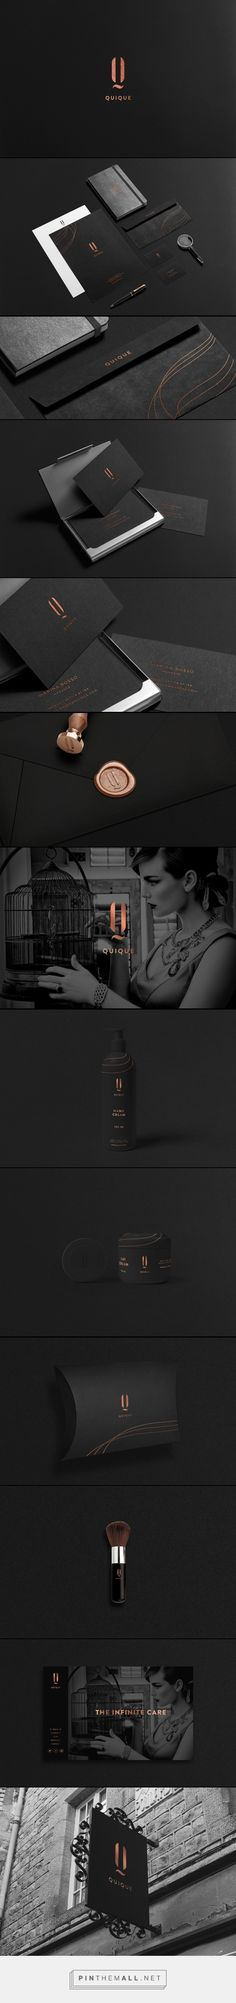 Quique cosmetics on Behance